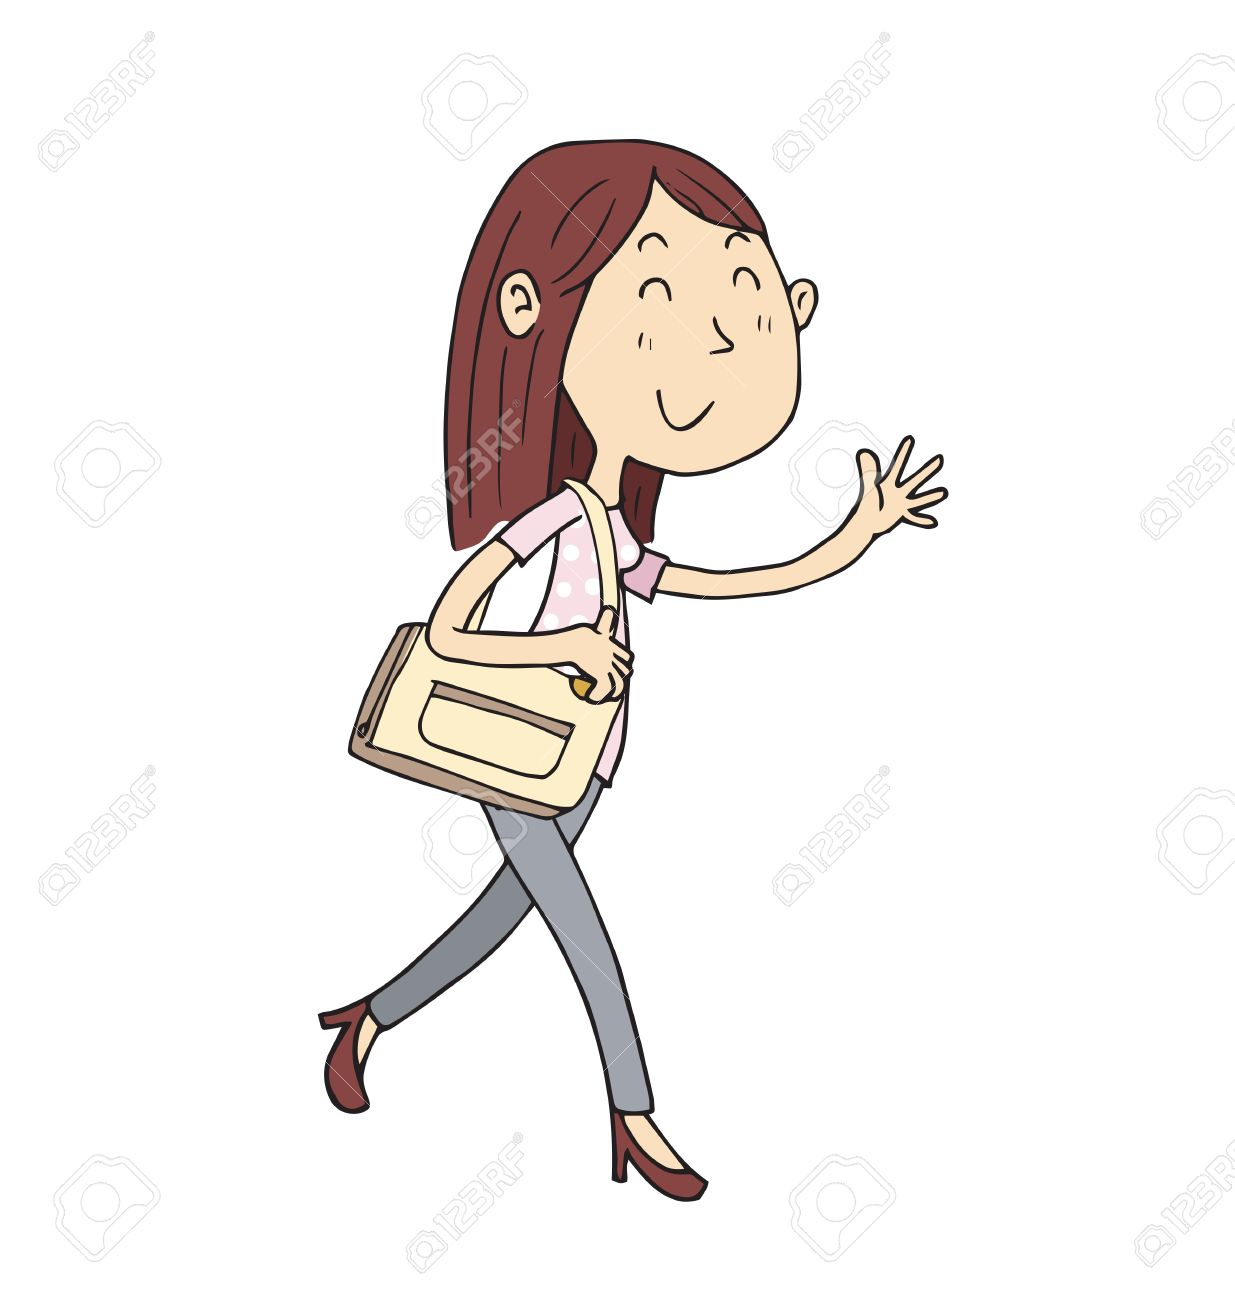 cartoon woman walking with bag in hand drawing style royalty free